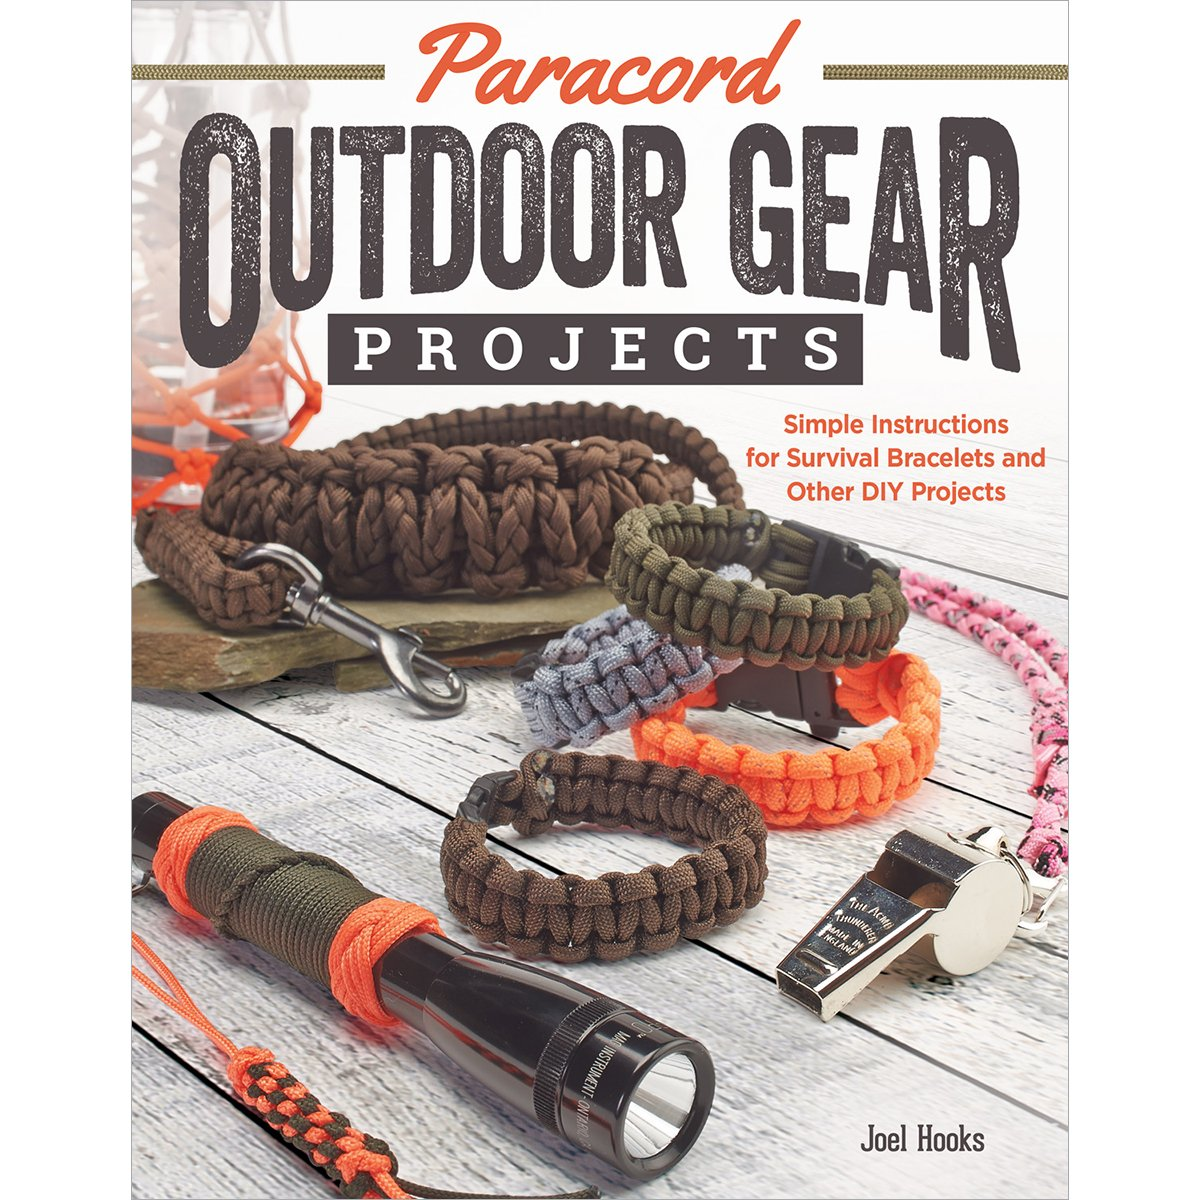 Paracord Outdoor Gear Projects Instructions